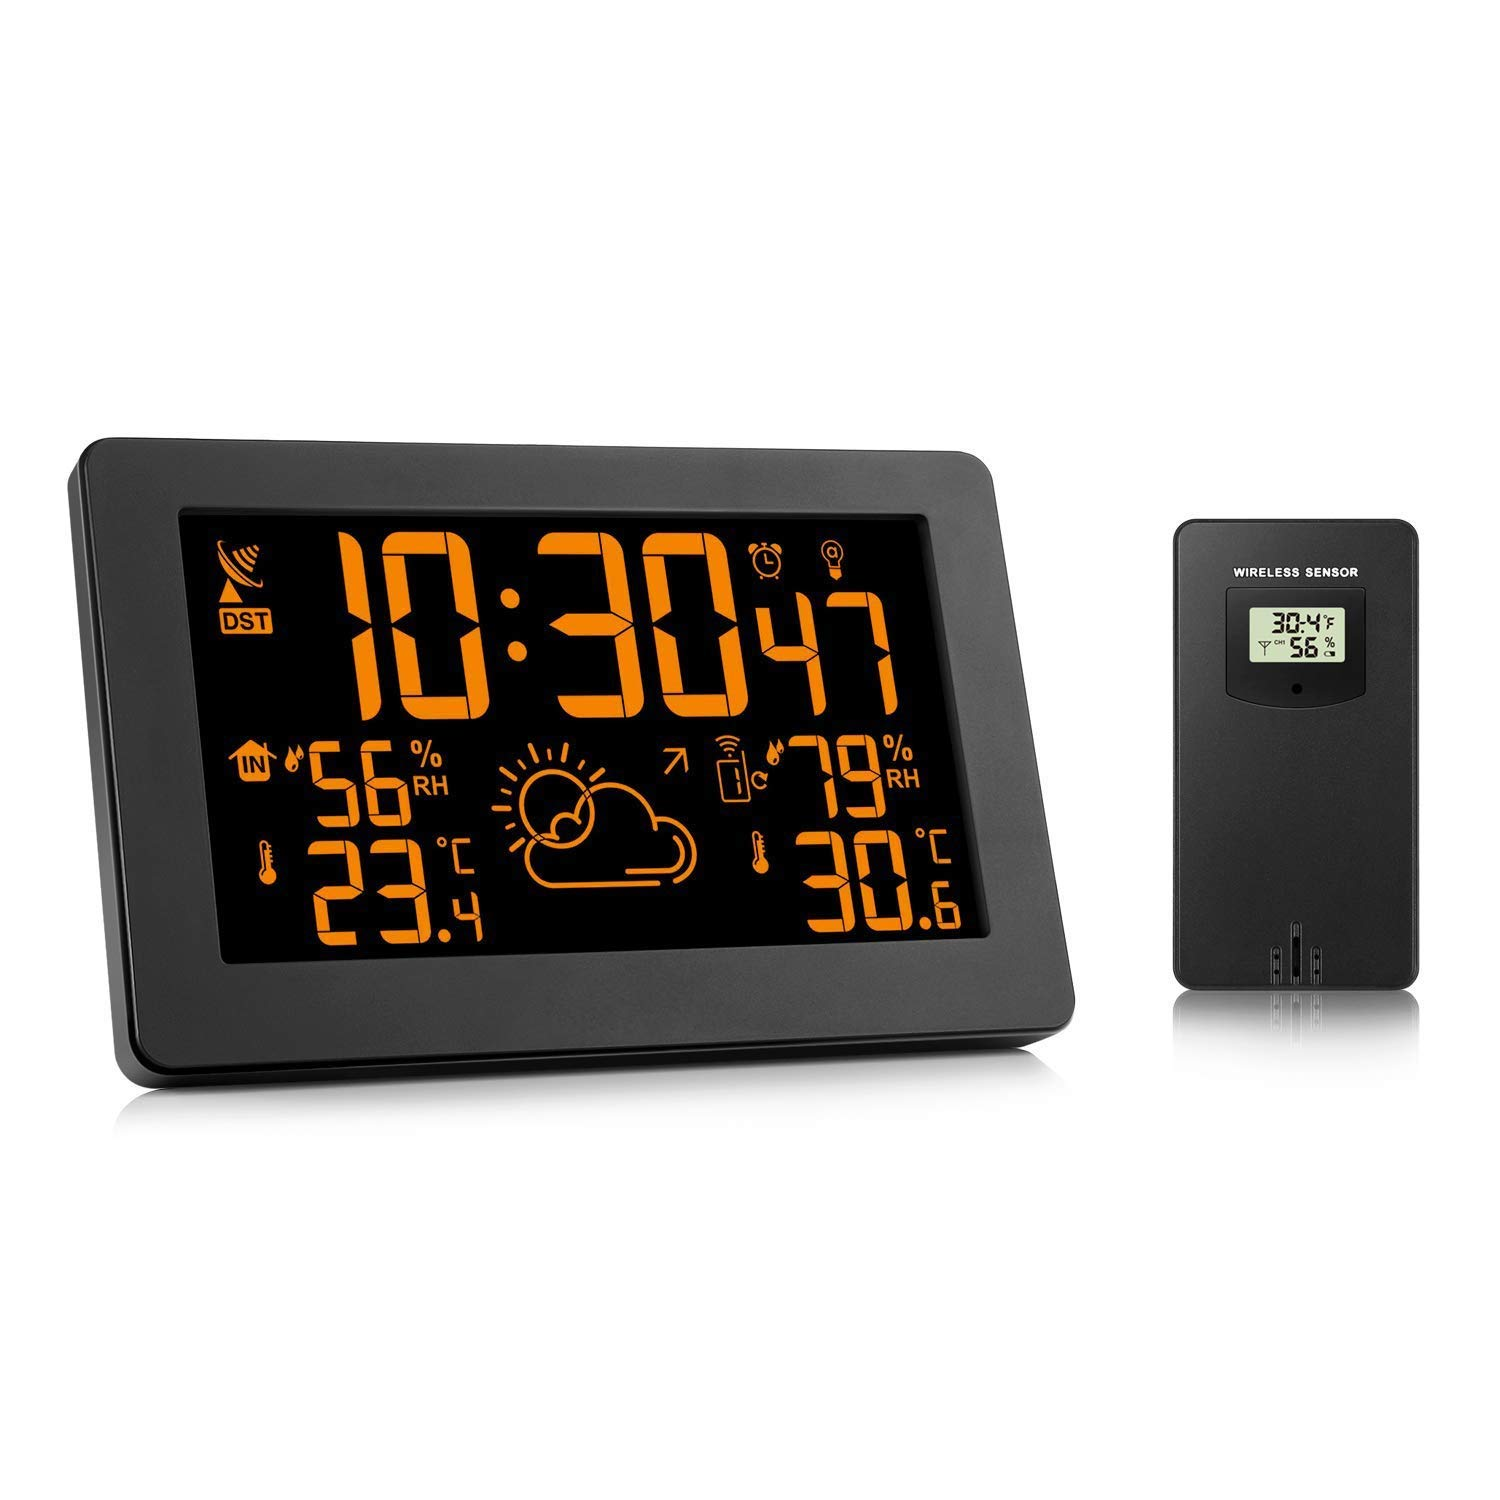 HXD Radio Alarm Clock, Weather Forecast Clock LED Large Screen Display Temperature Humidity Weather Clock by HXD